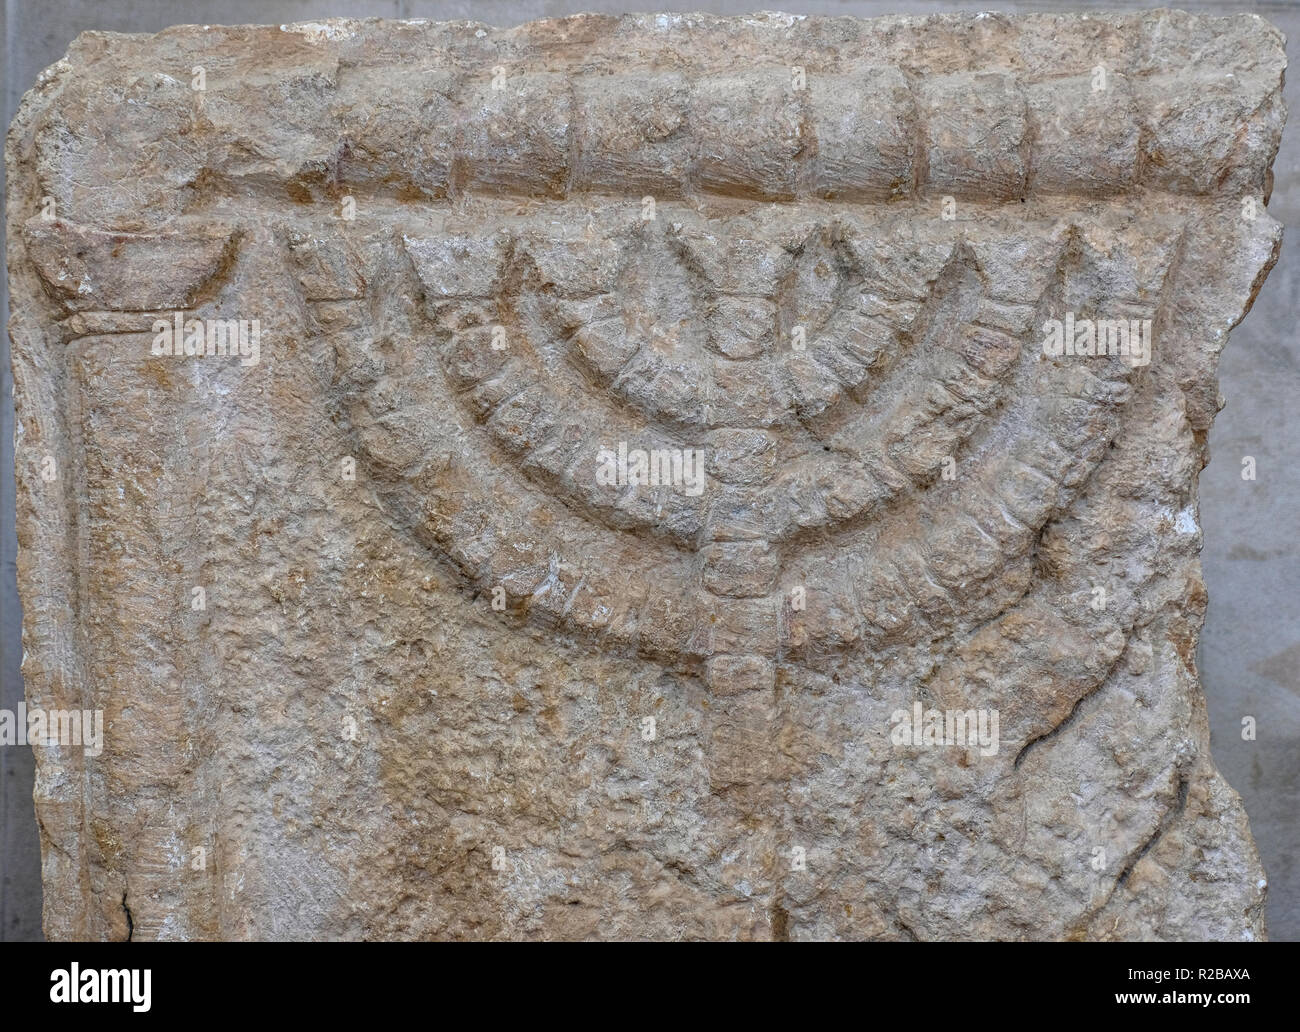 Stone lintel decorated with Seven-Branched Menorah of an ancient synagogue from the 3rd-4th century CE found at Eshtemoa in the Southern Hebron hill region West Bank displayed at the Rockefeller Museum, that houses a large collection of artifacts unearthed in archaeological excavations conducted in Mandate Palestine, in the 1920s and 1930s located in East Jerusalem Israel - Stock Image